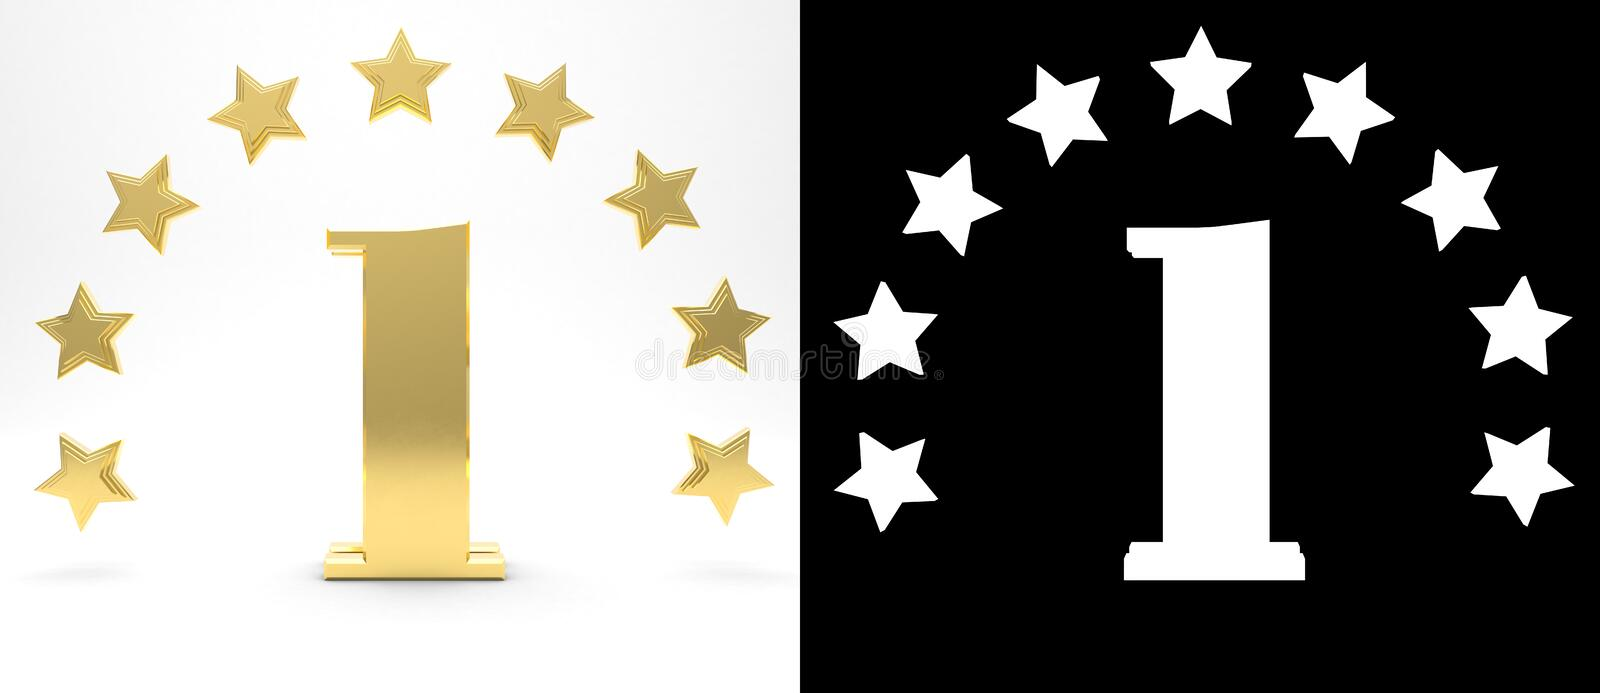 Golden number one on white background with drop shadow and alpha channel , decorated with a circle of stars. 3D illustration.  royalty free illustration